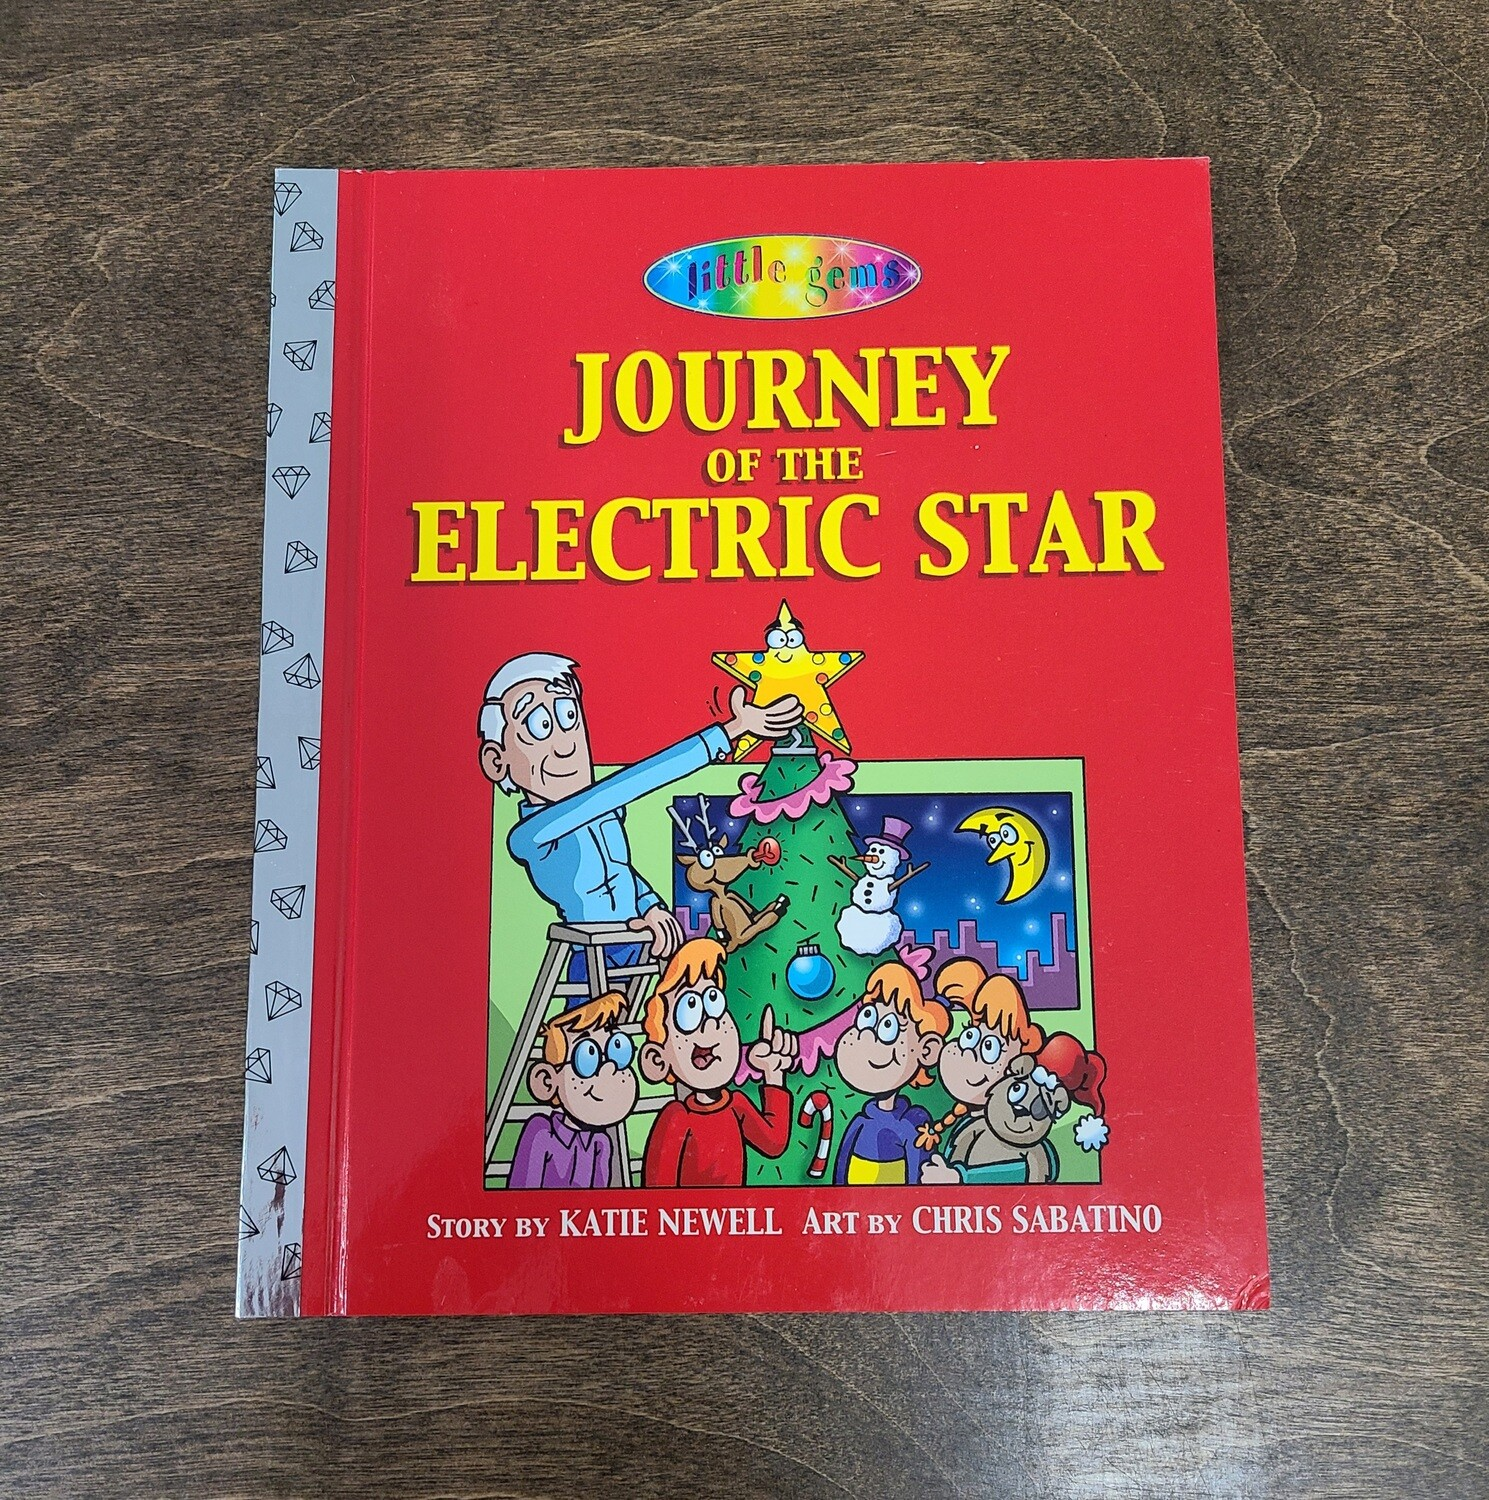 Journey of the Electric Star by Katie Newell and Chris Sabatino